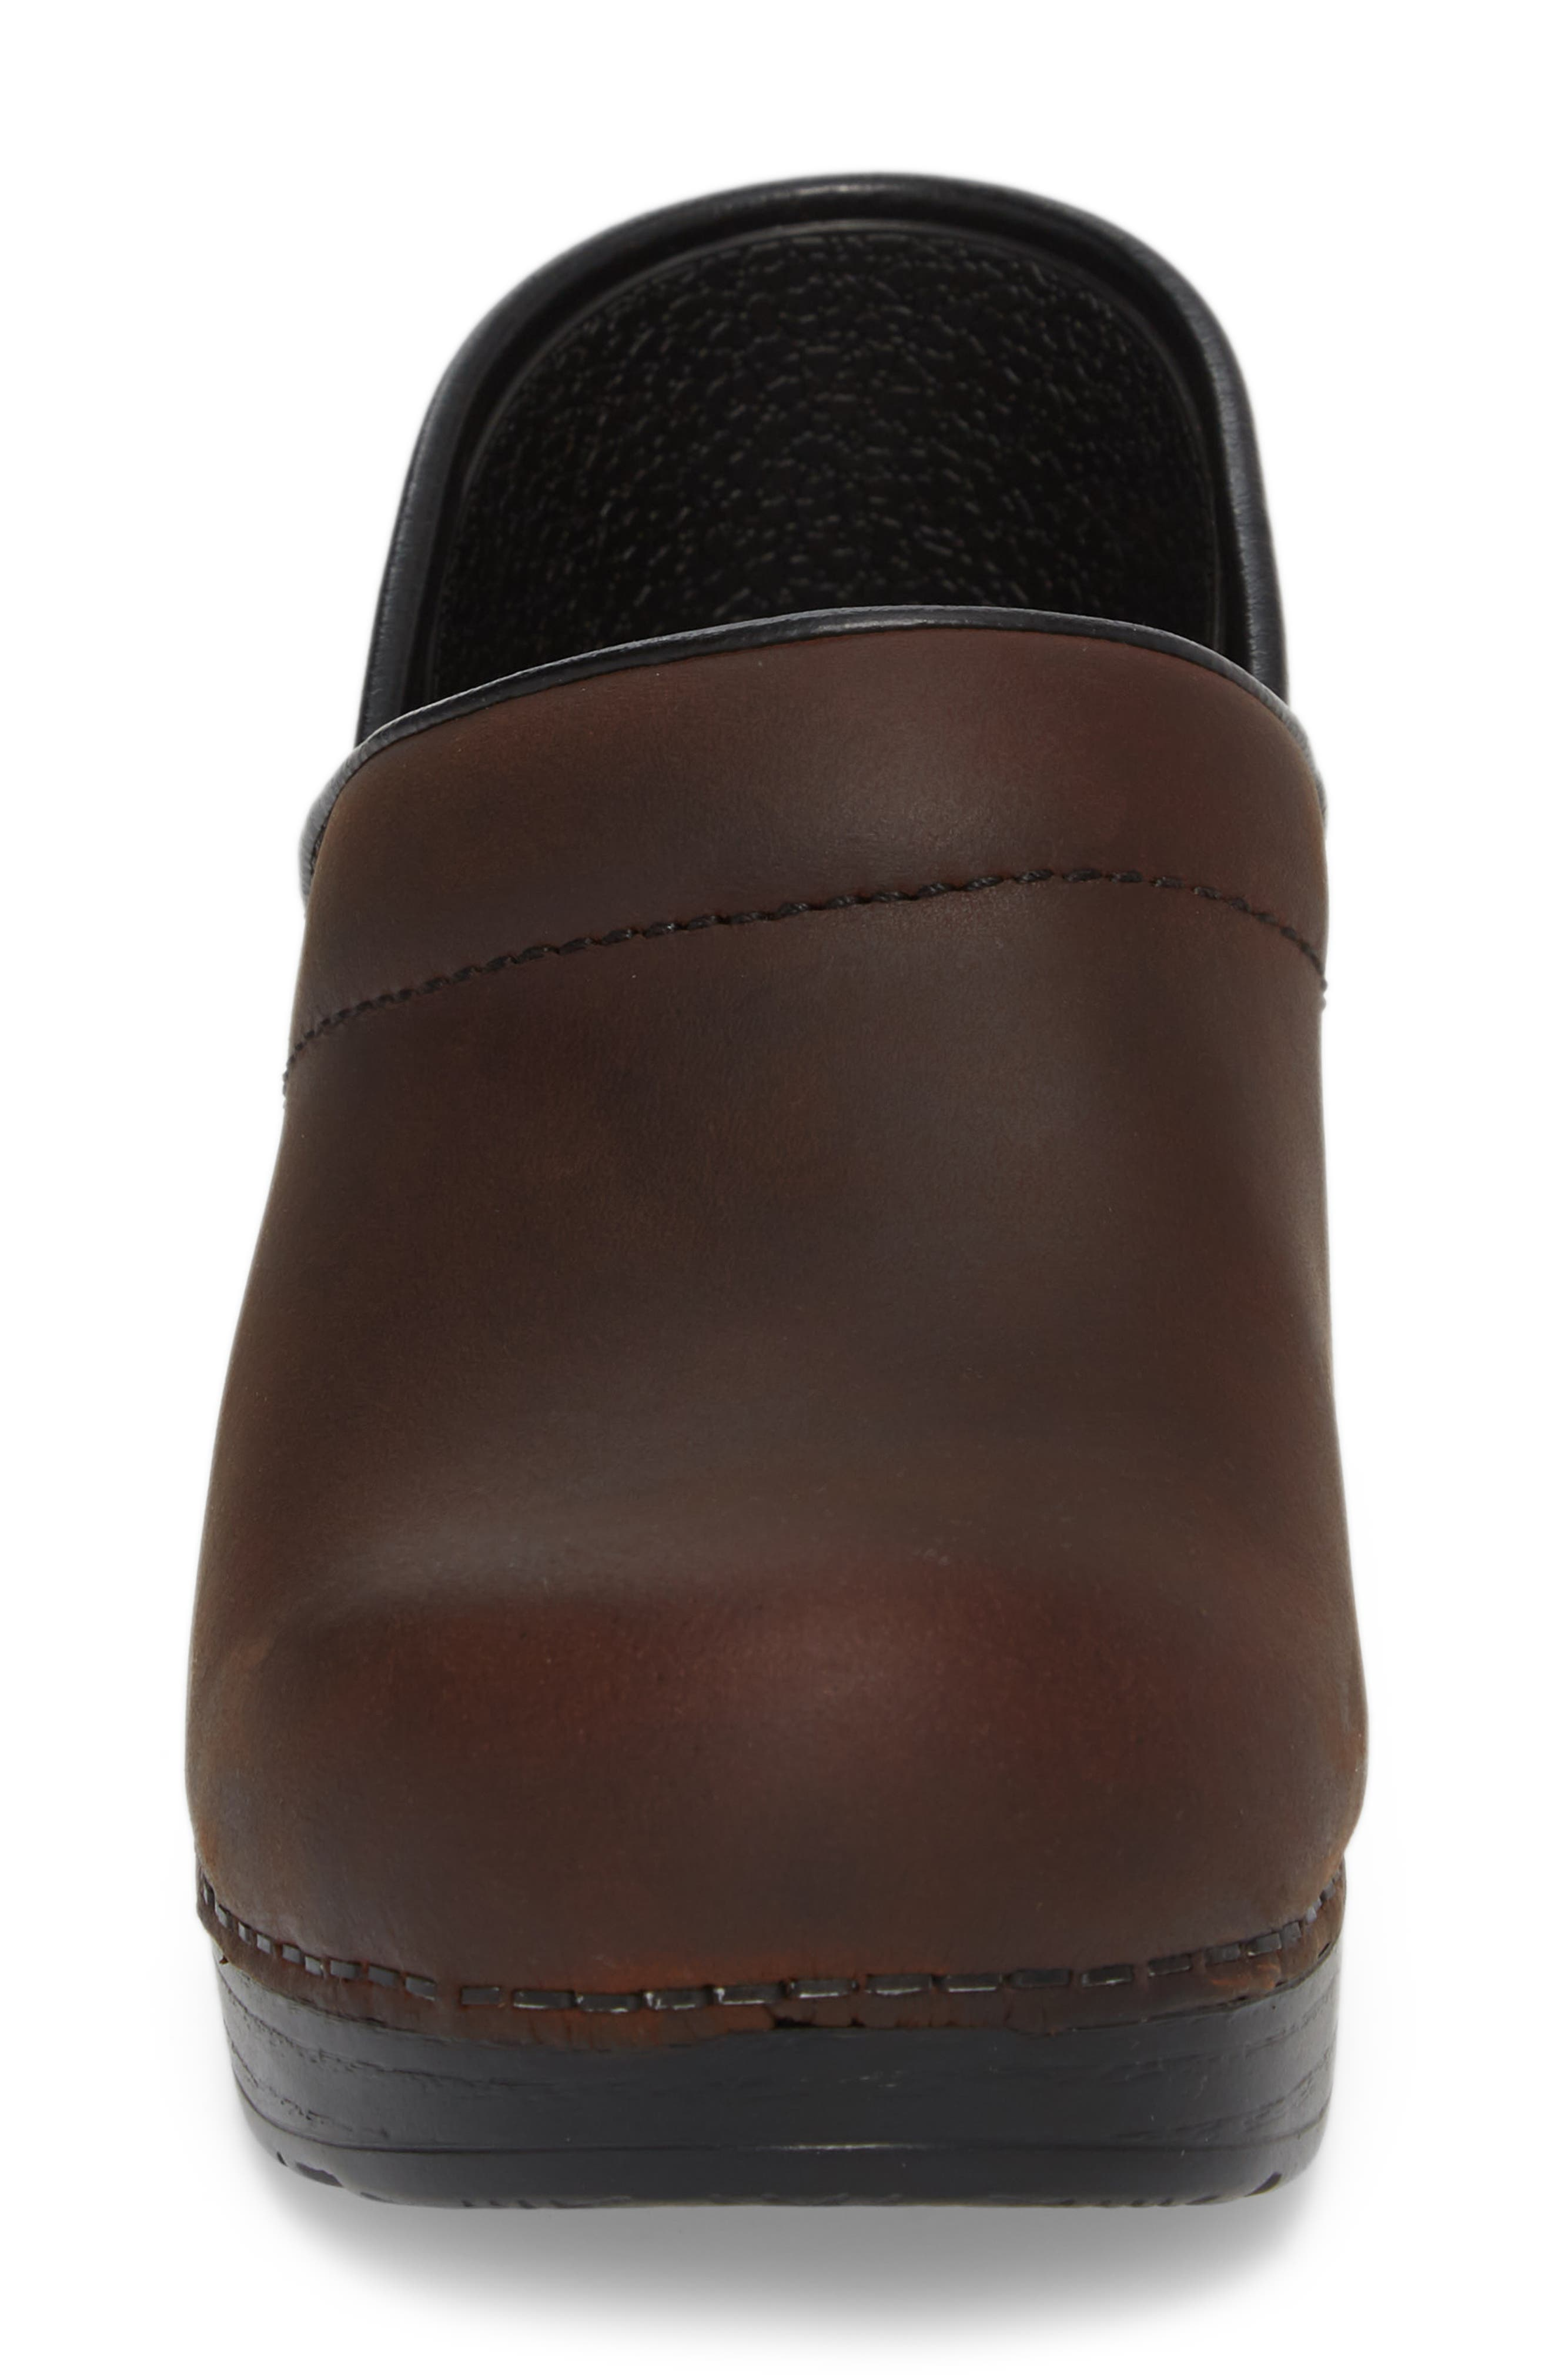 DANSKO,                             Wide Pro Clog,                             Alternate thumbnail 4, color,                             ANTIQUE BROWN/ BLACK LEATHER